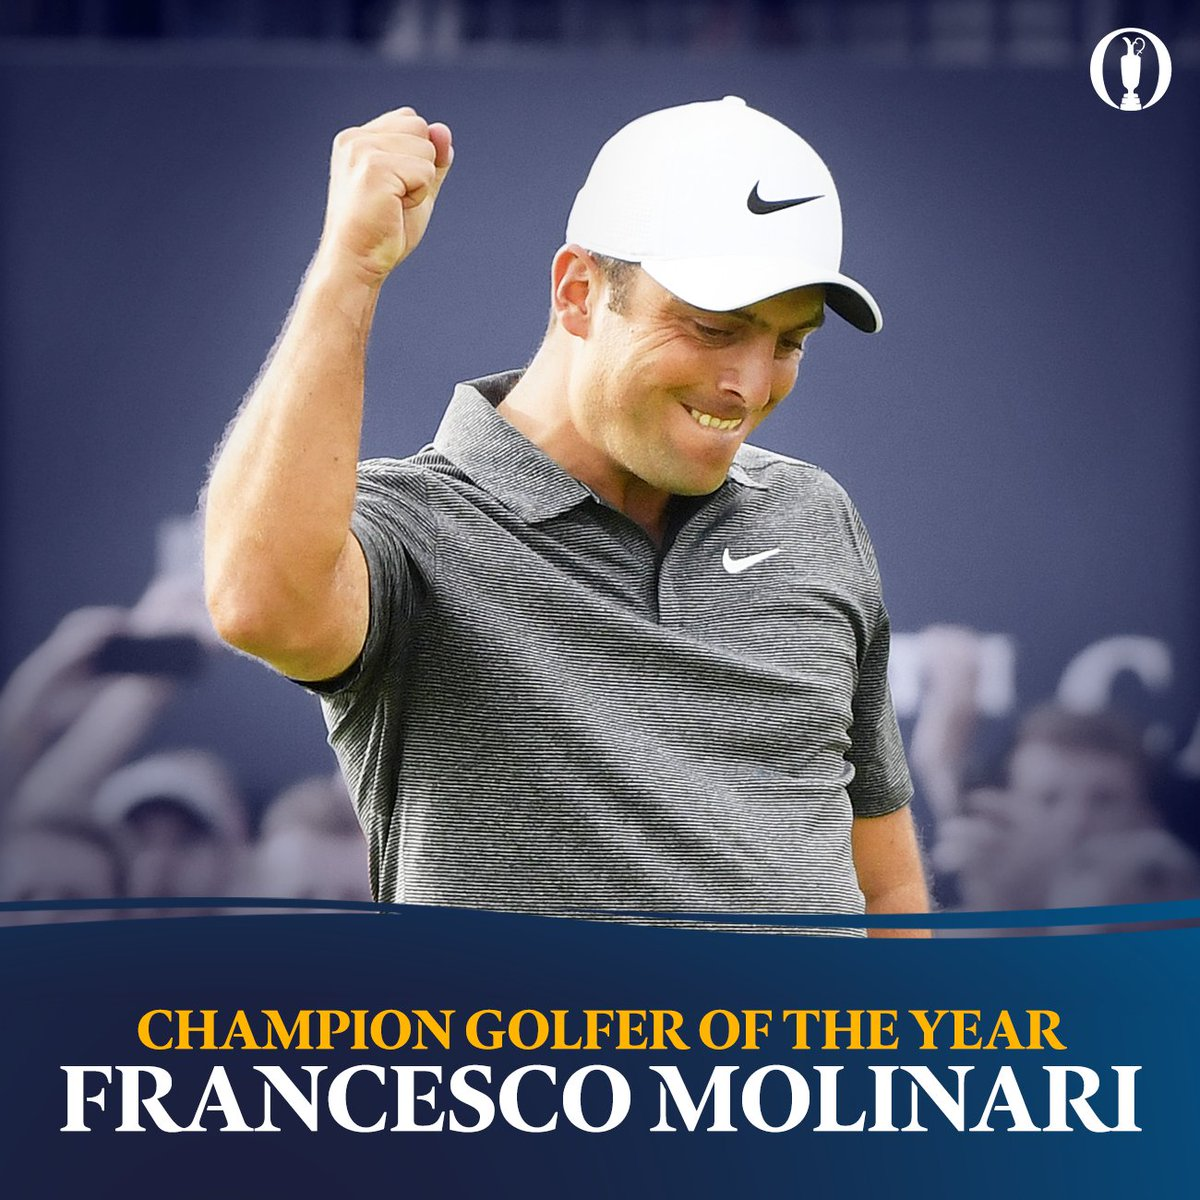 The Open's photo on Francesco Molinari